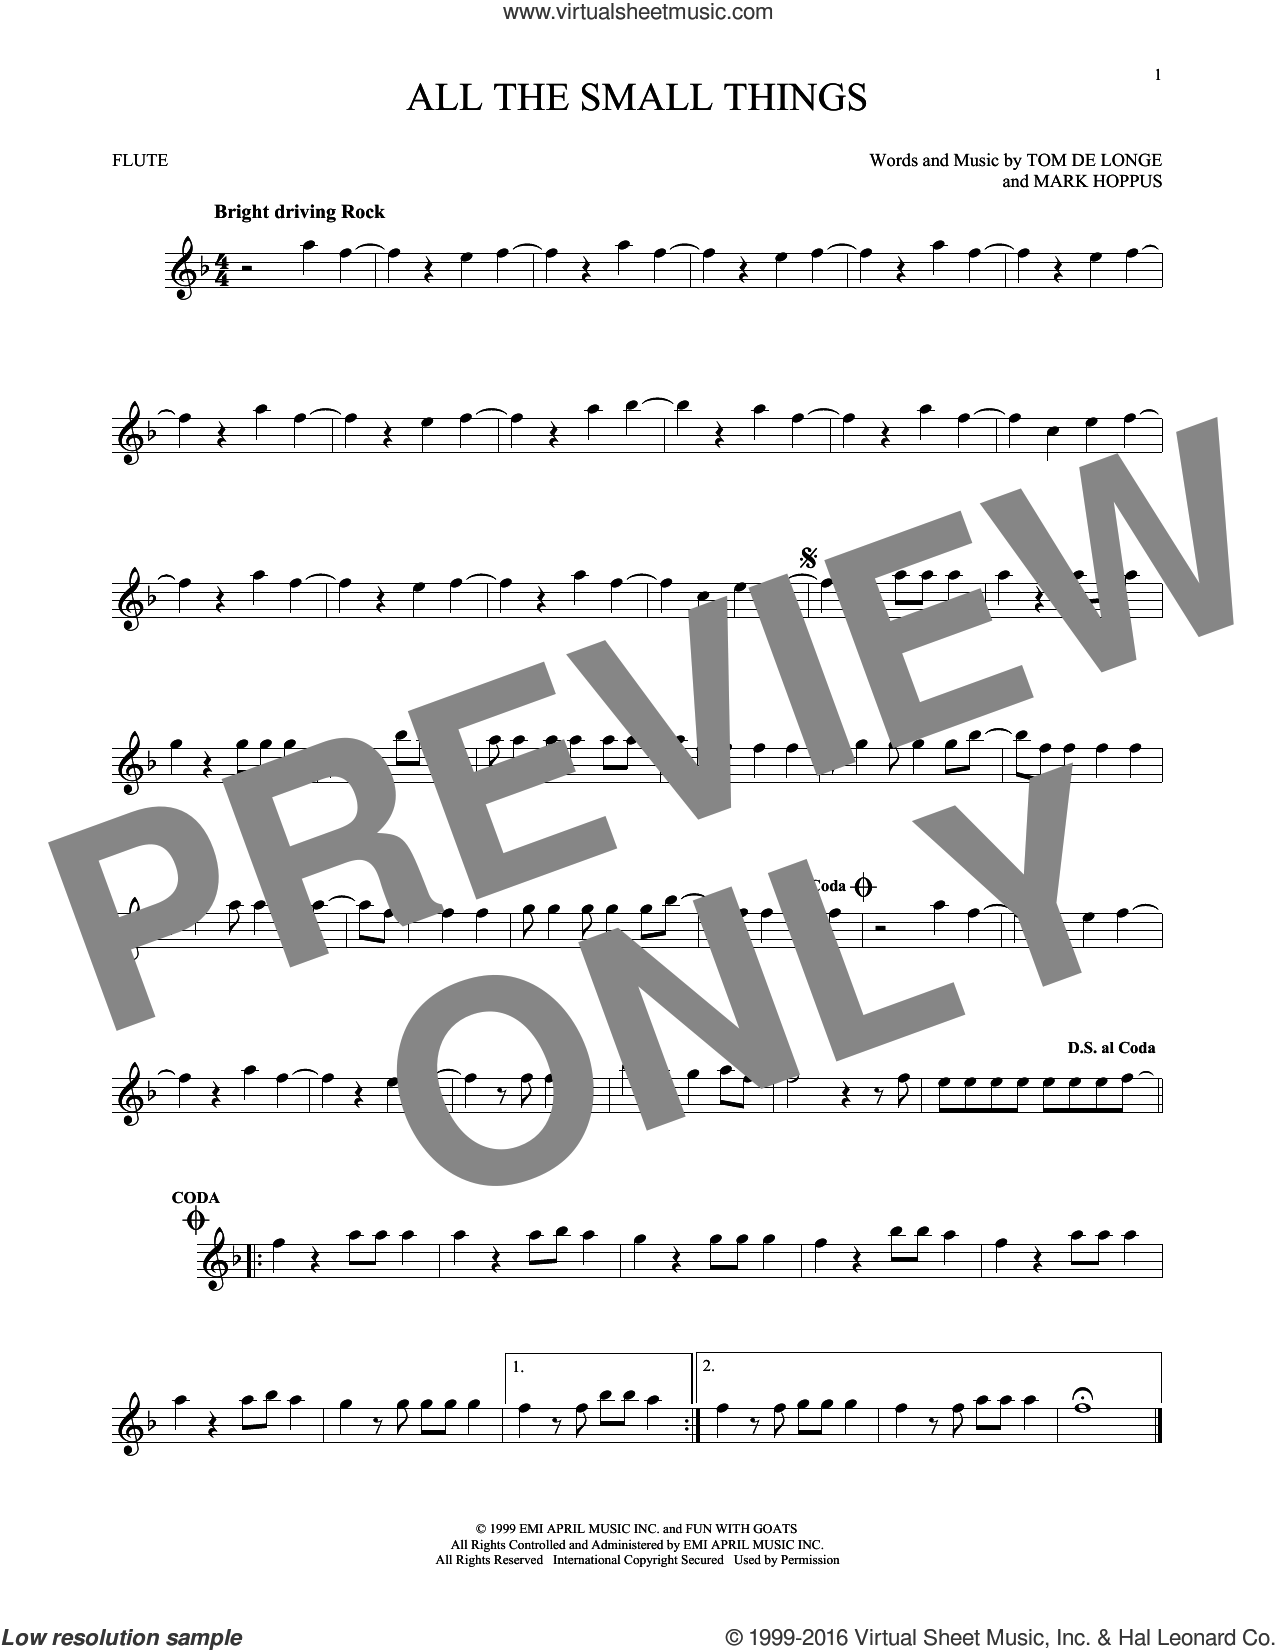 All The Small Things sheet music for flute solo by Blink 182, Mark Hoppus, Tom DeLonge and Travis Barker, intermediate skill level